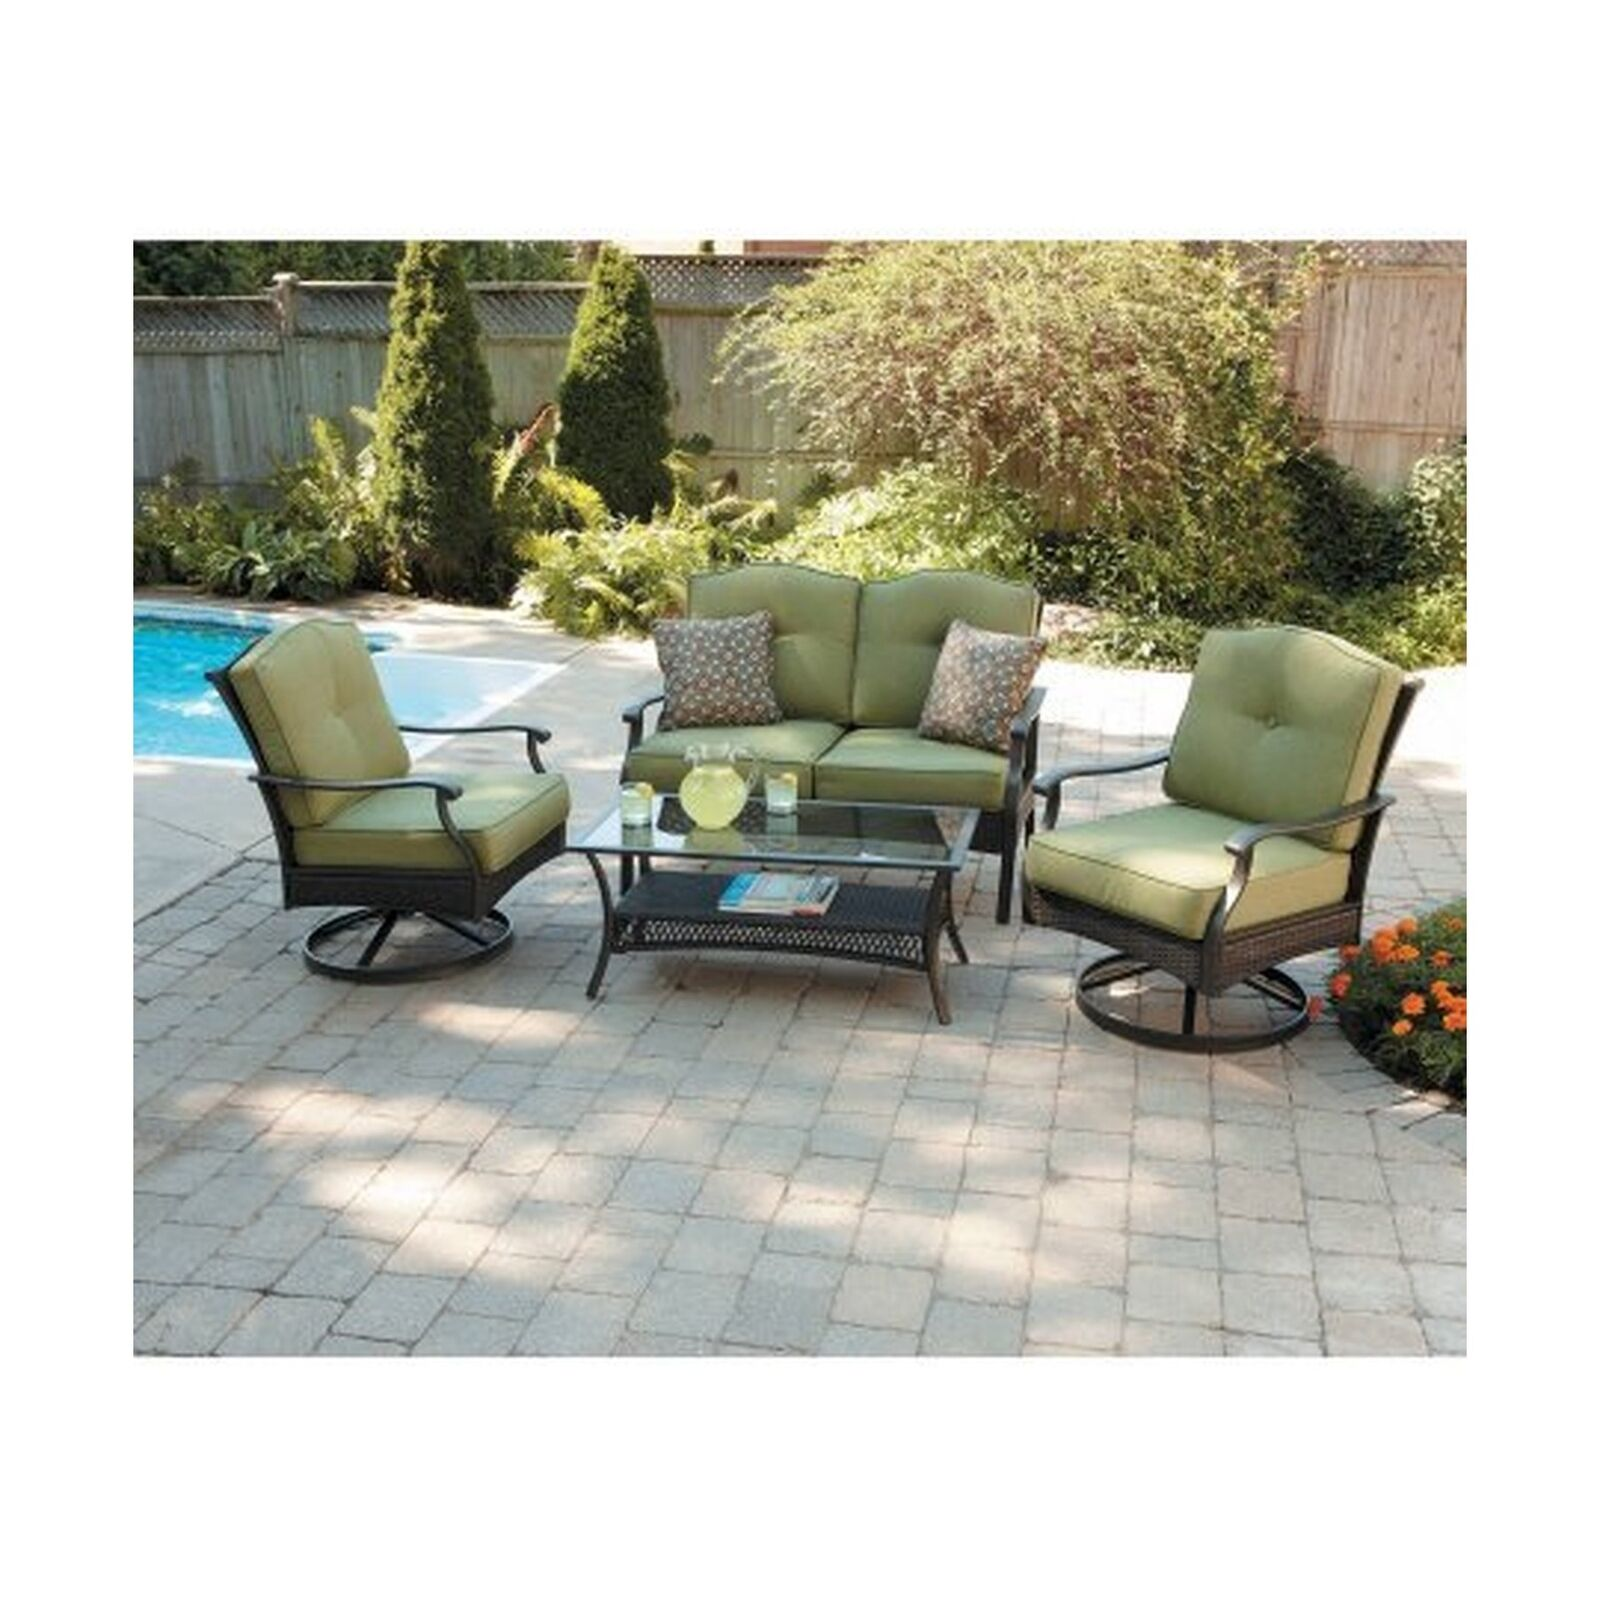 Table Chair Loveseat 4pc Outdoor Patio